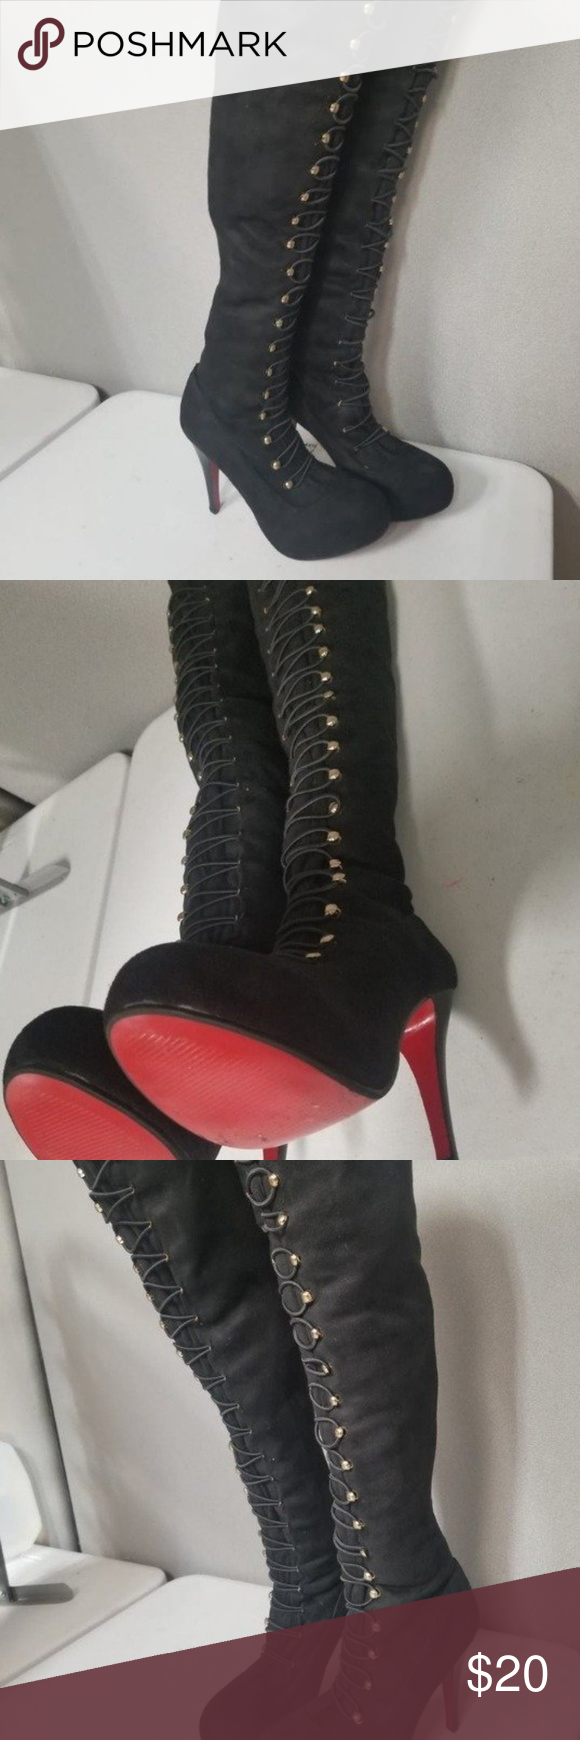 f54c7398f0f Black Thigh High Boots Like new, black, button-up, over-the-knee ...